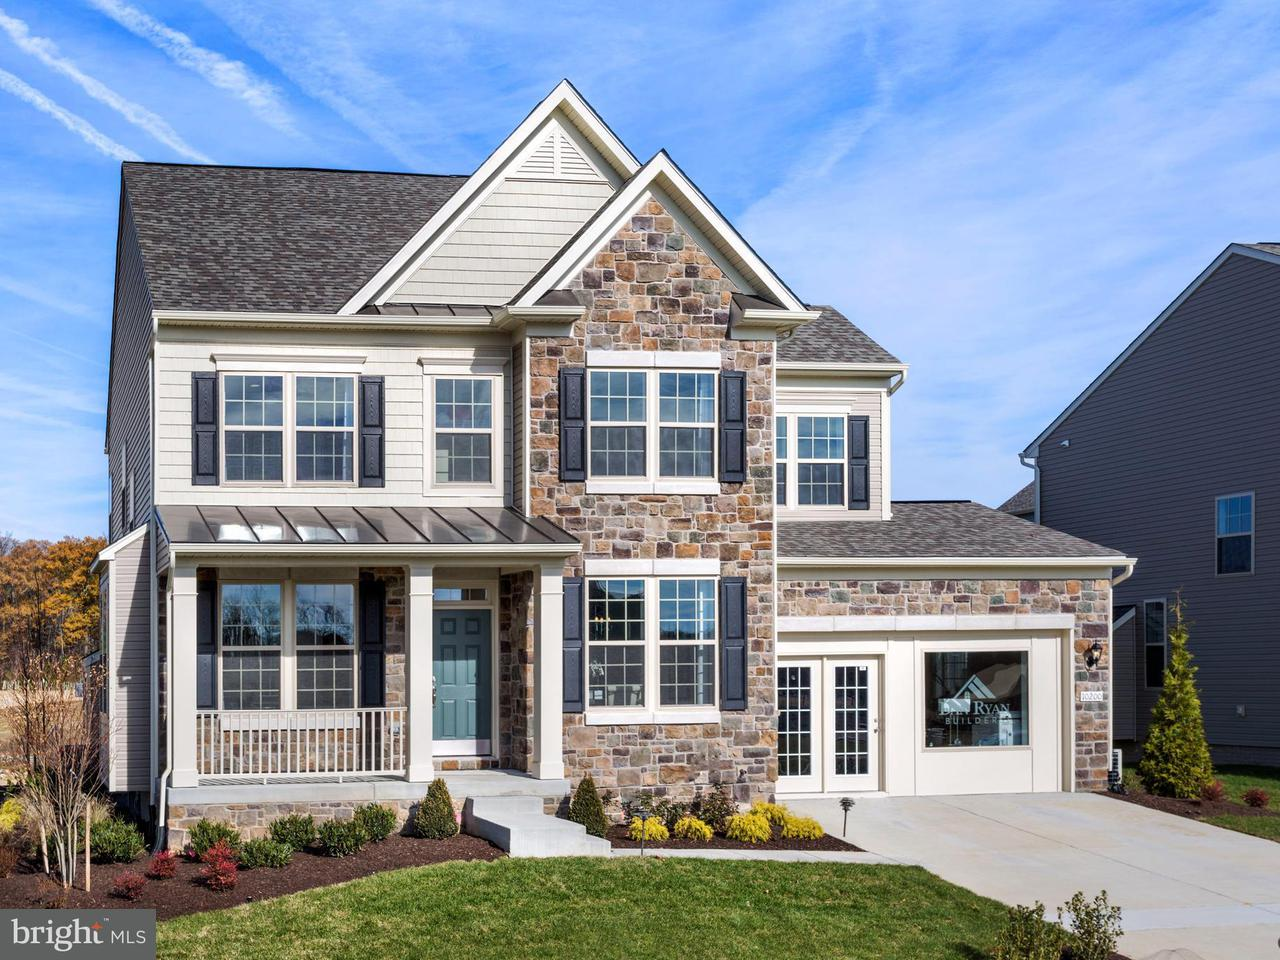 Moradia para Venda às 10200 GALAXY VIEW Lane 10200 GALAXY VIEW Lane Lanham, Maryland 20706 Estados Unidos